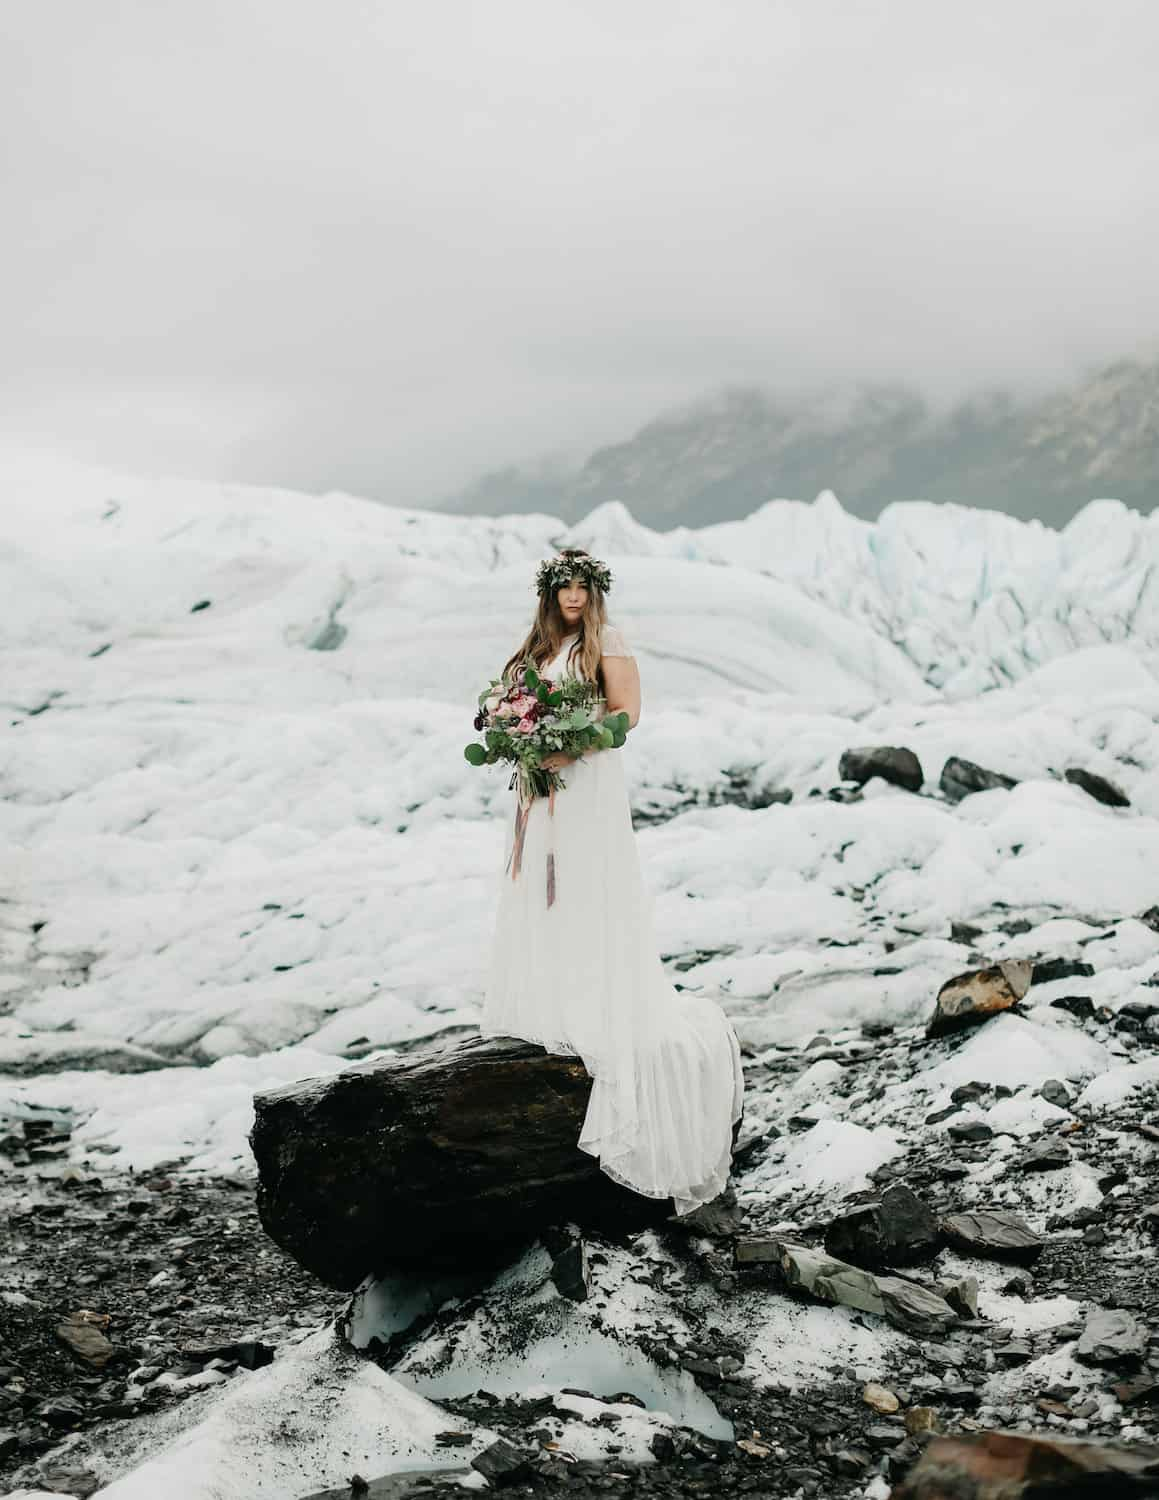 Alaska Destination Weddings and Elopements Joel Allegretto Wedding Photographer Rebecca and Josephs Elopement